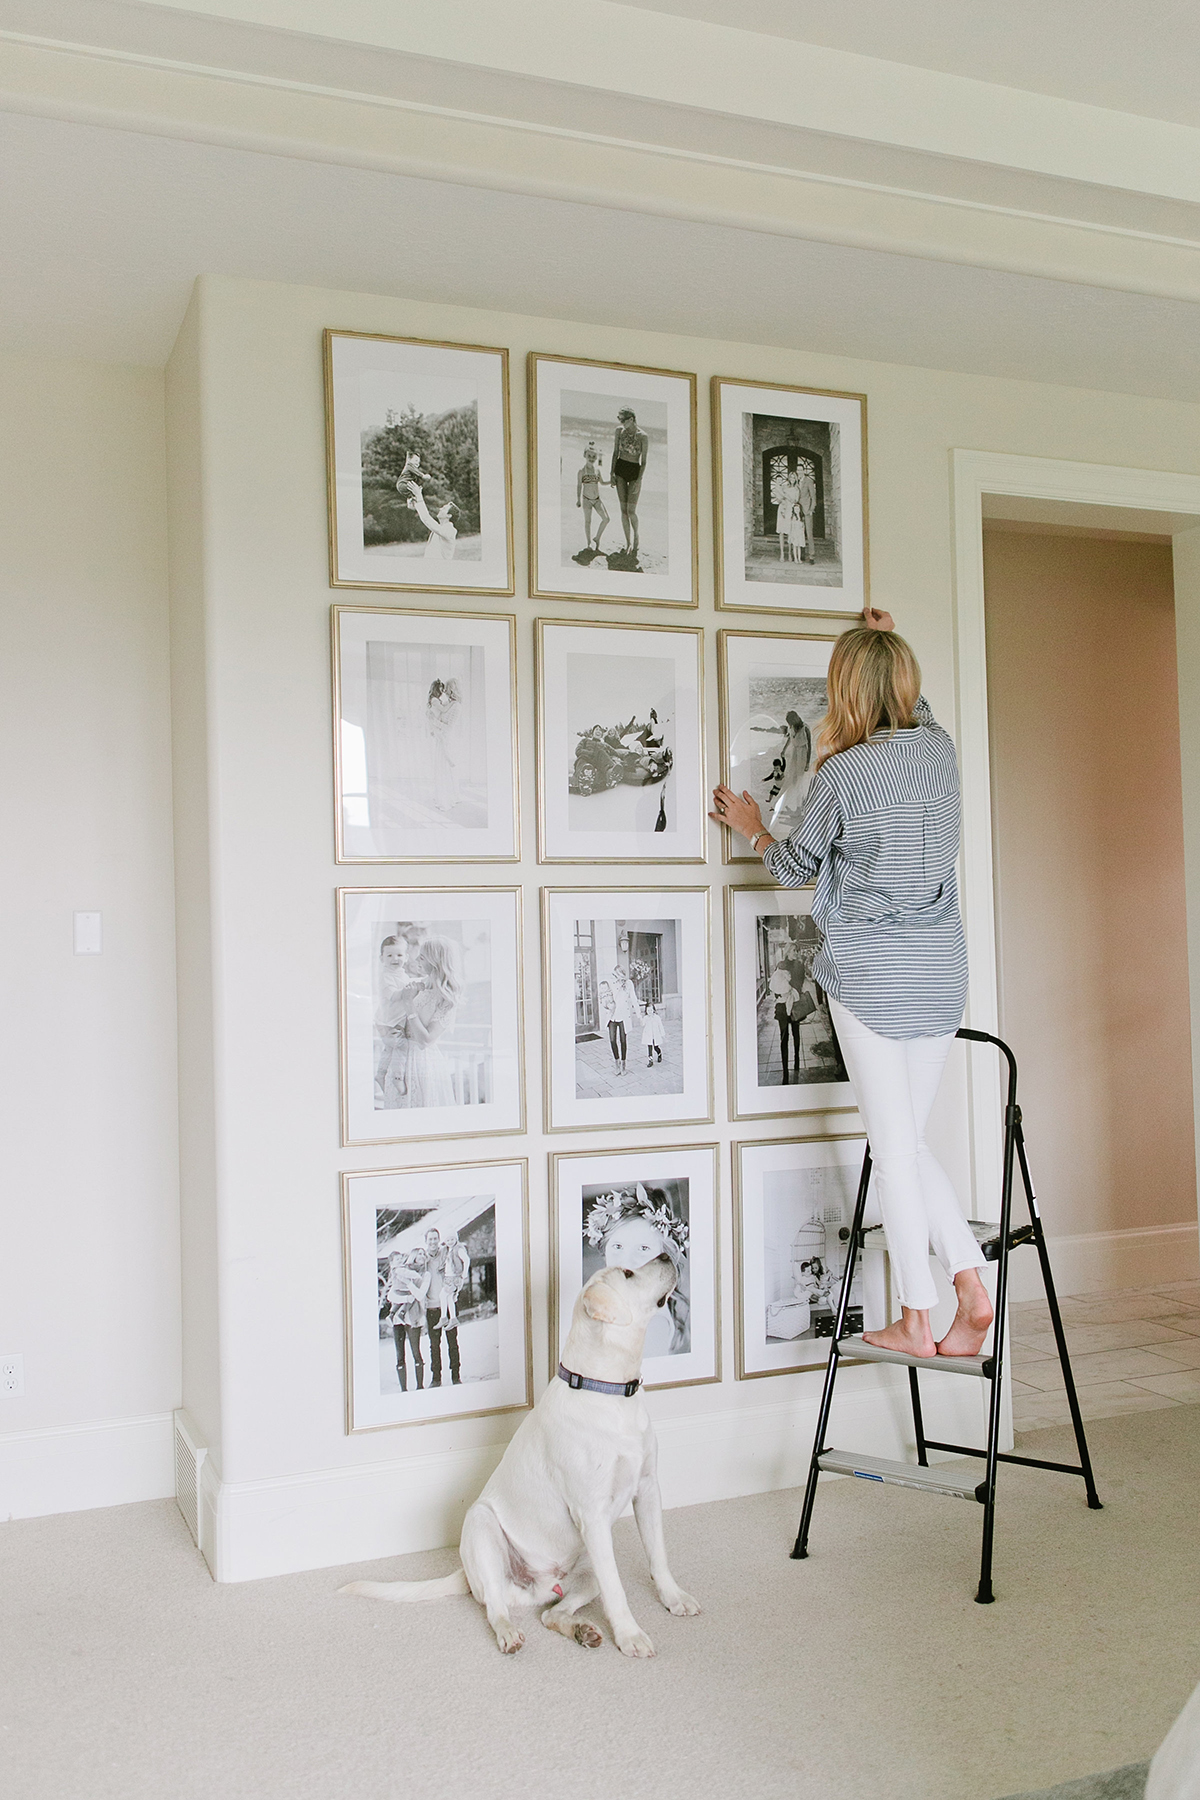 5 Simple Gallery Wall Ideas: 12 Days Of Giveaways: Day 5 With Framebridge